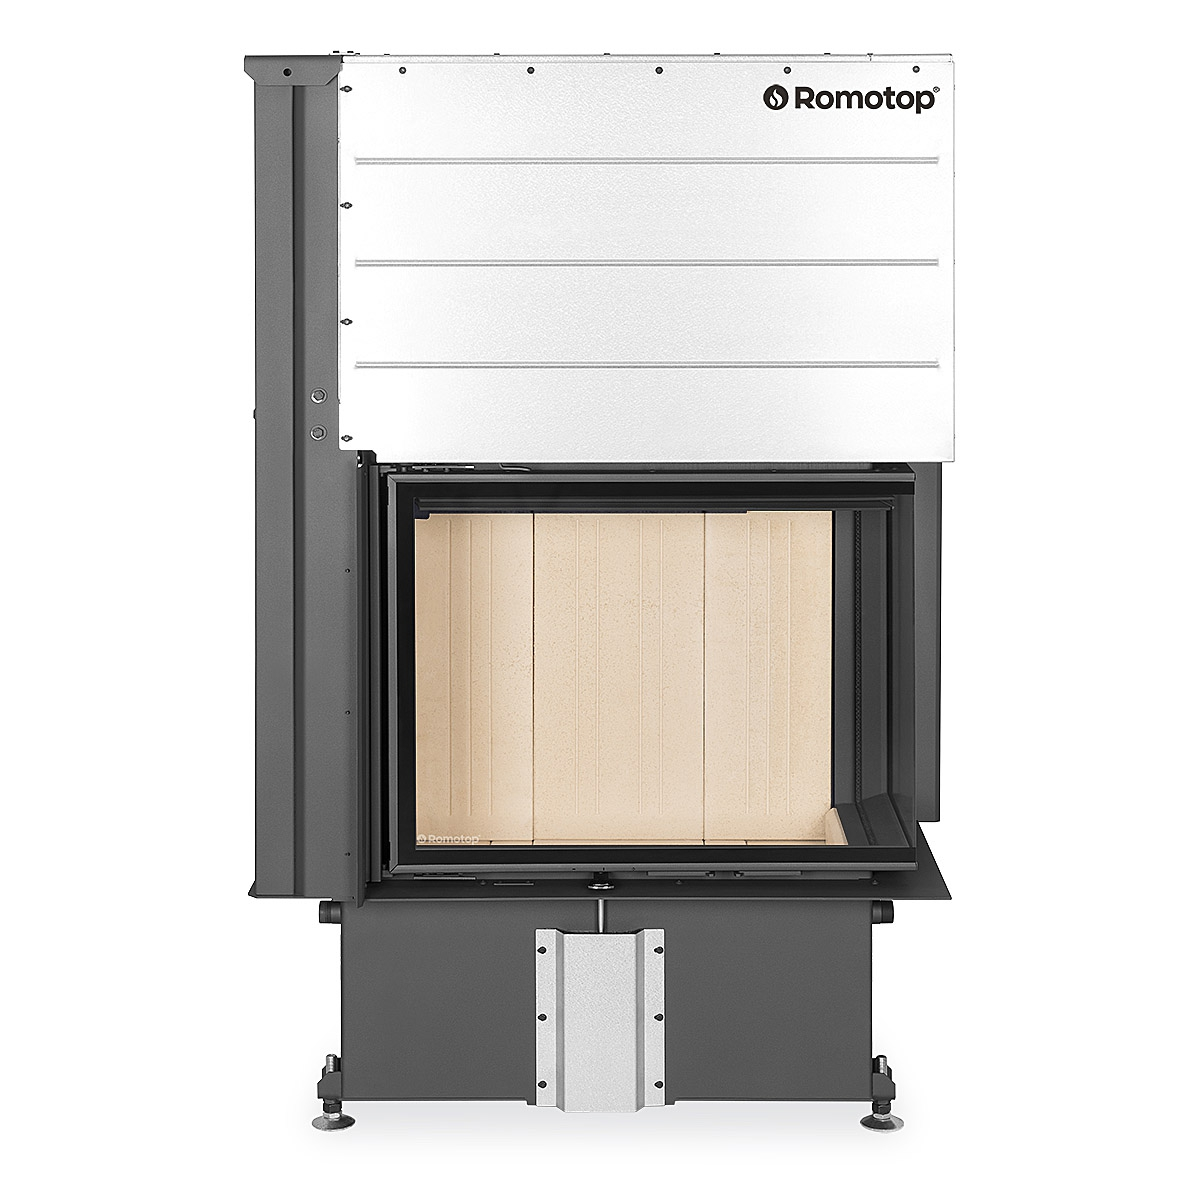 IMPRESSION R/L 2g L 71.60.34.21 - corner fireplace insert with lifting door and split glazing